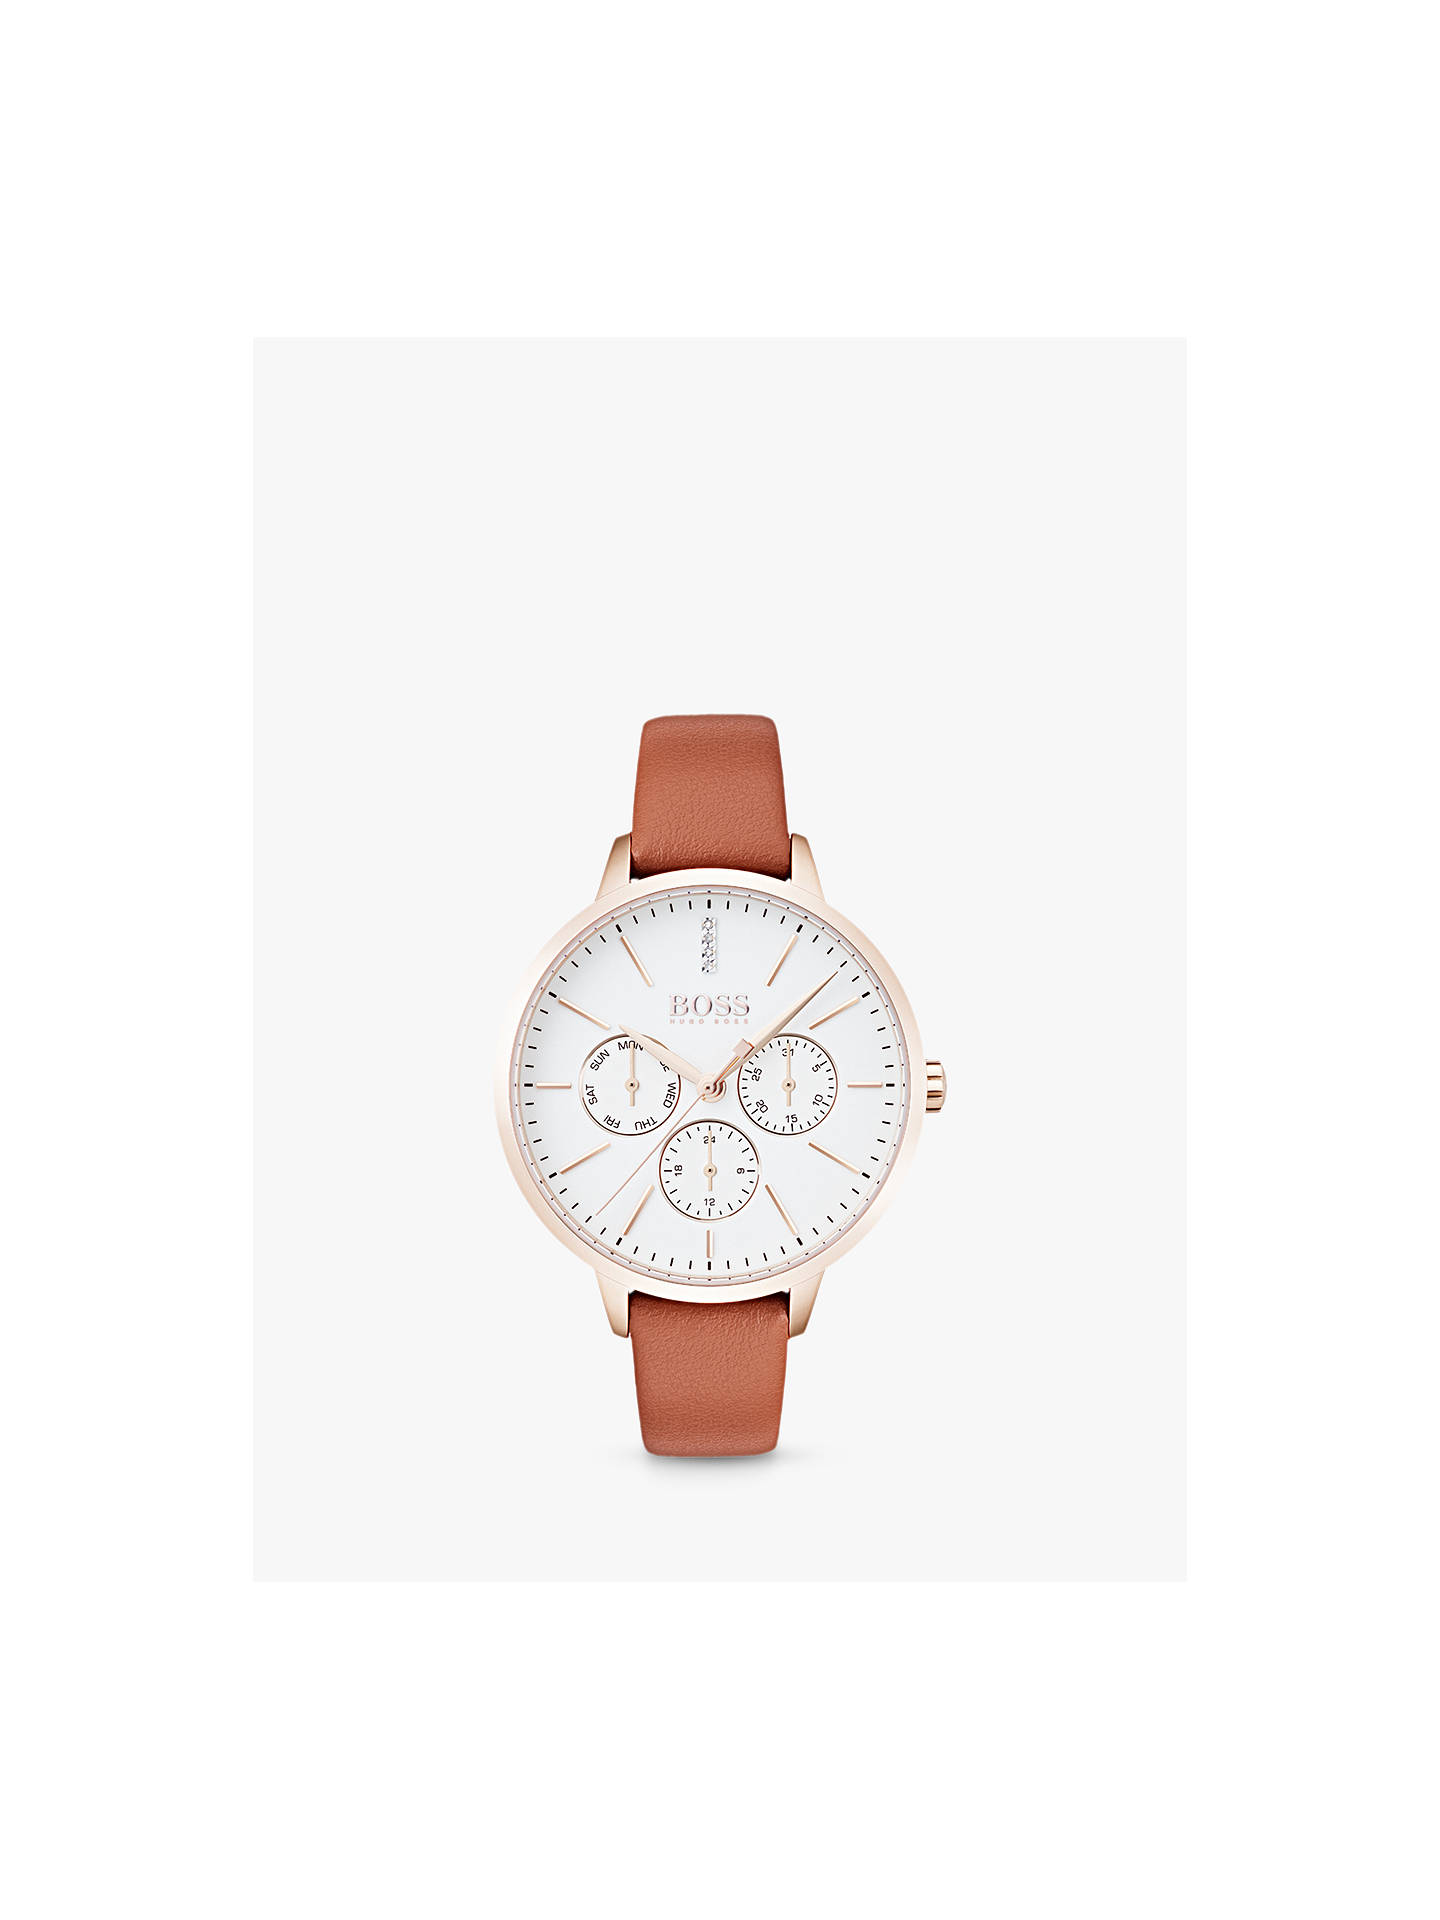 3522bb24992b Buy HUGO BOSS Women's Symphony Day Date Leather Strap Watch, Brown/White  1502420 Online ...